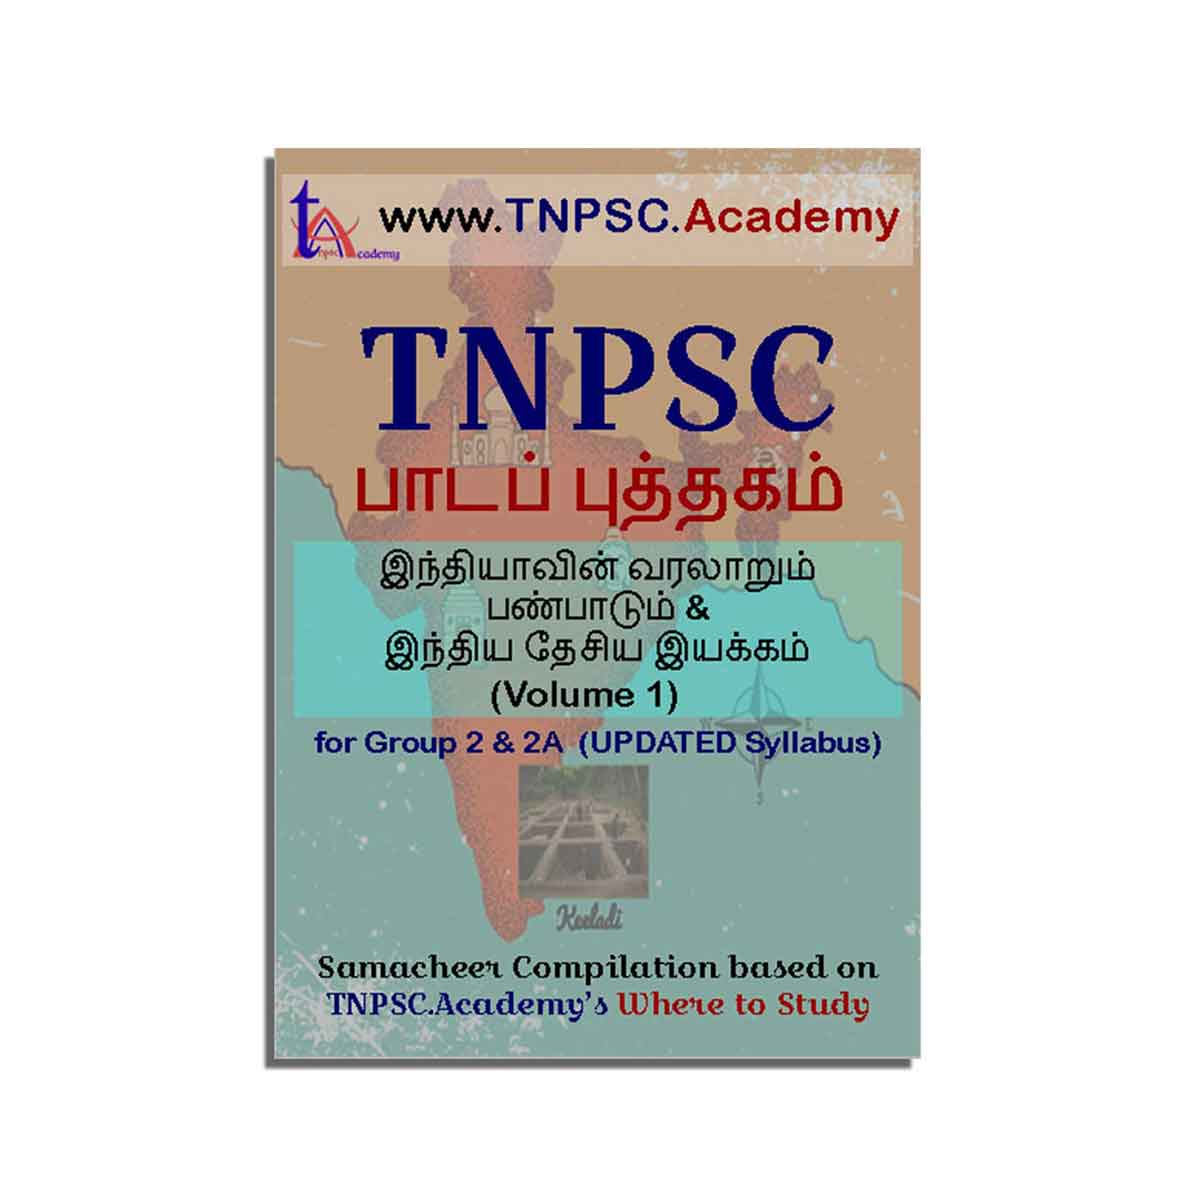 TNPSC History & Indian National Movement Samacheer